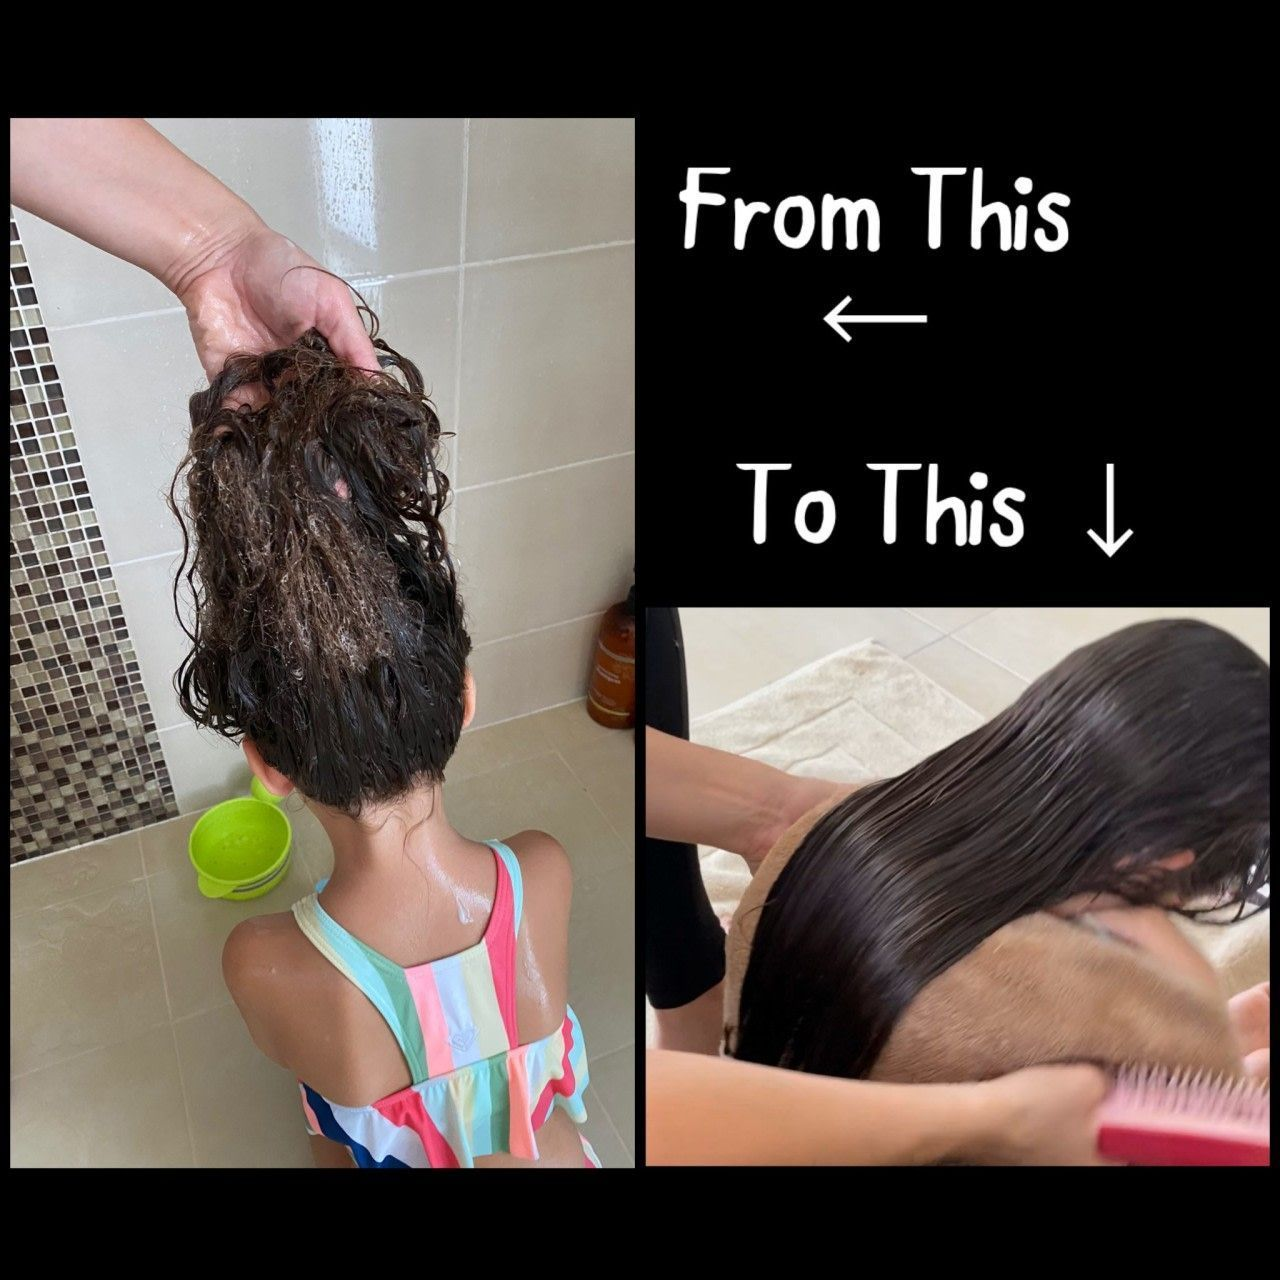 How To Detangle Matted Hair Painlessly Here Is A Step By Step Guide On How You Detangle Guide Hair Matted Painles In 2020 Matted Hair Detangler Hair Detangler